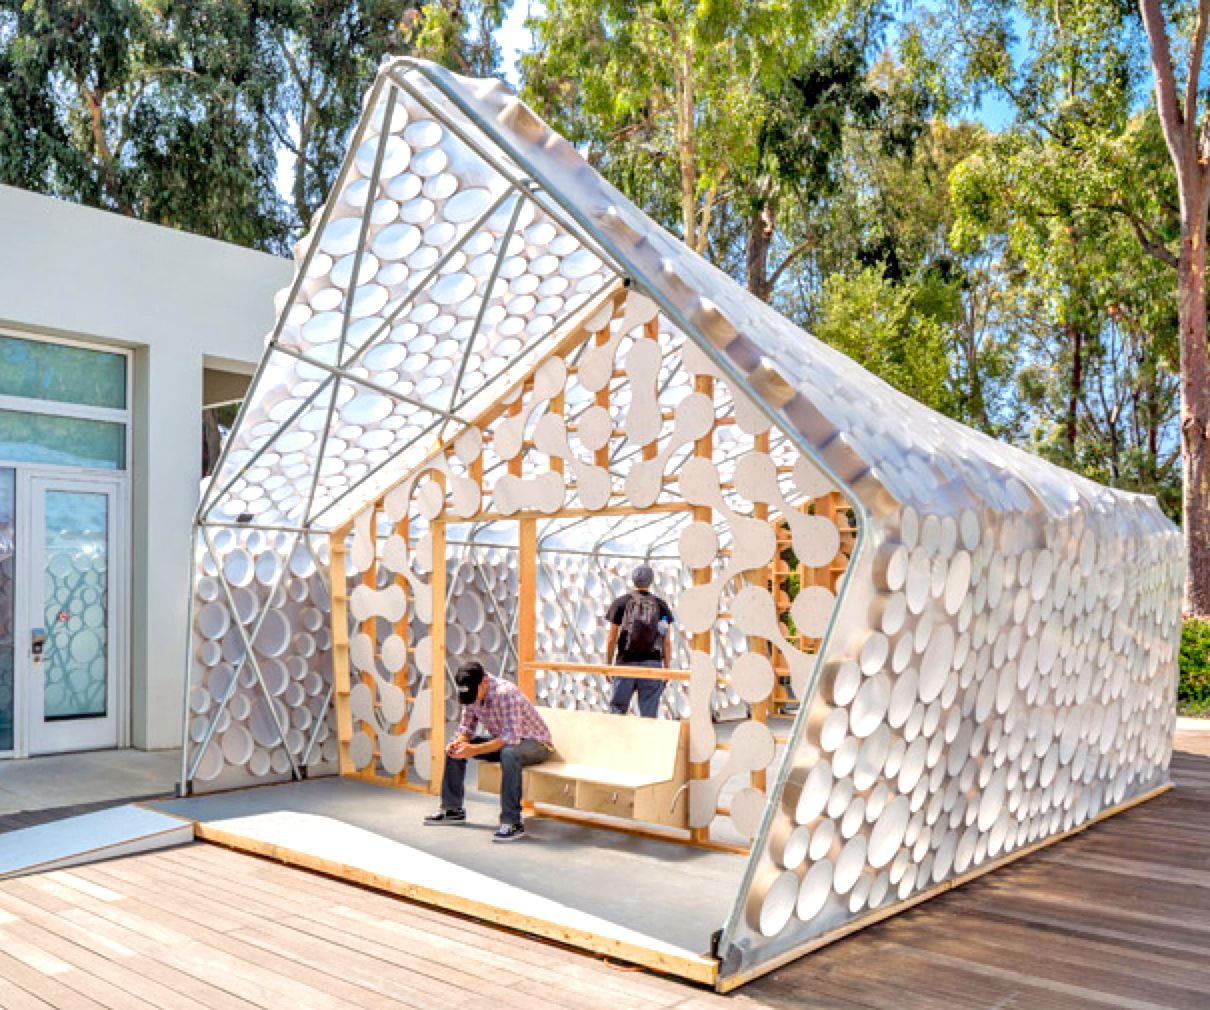 Backyard BI(h)OME Is A Tiny, Low-cost House With A Light